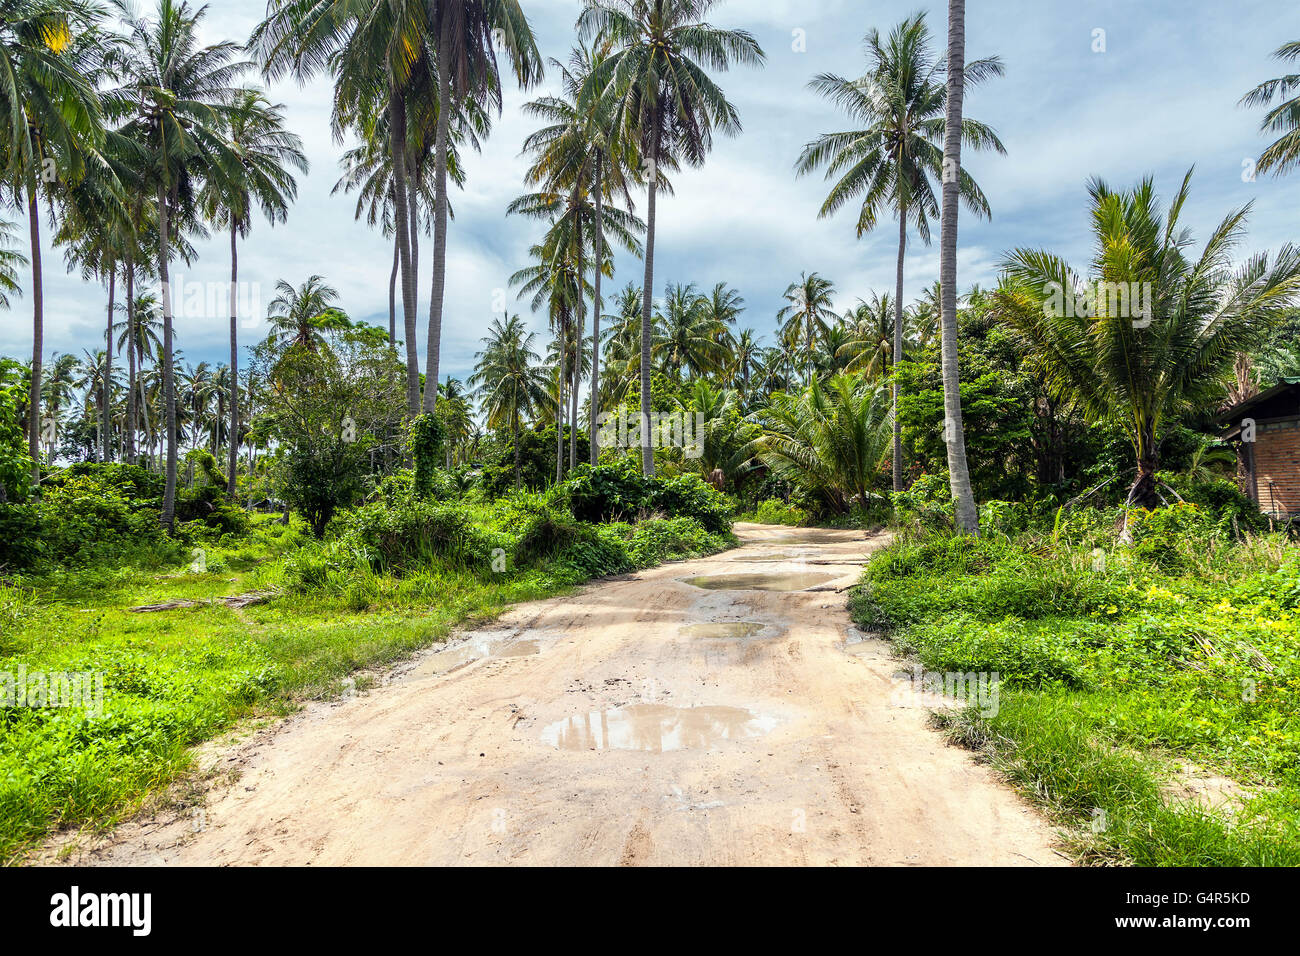 Tropical island of Racha in Thailand - Stock Image